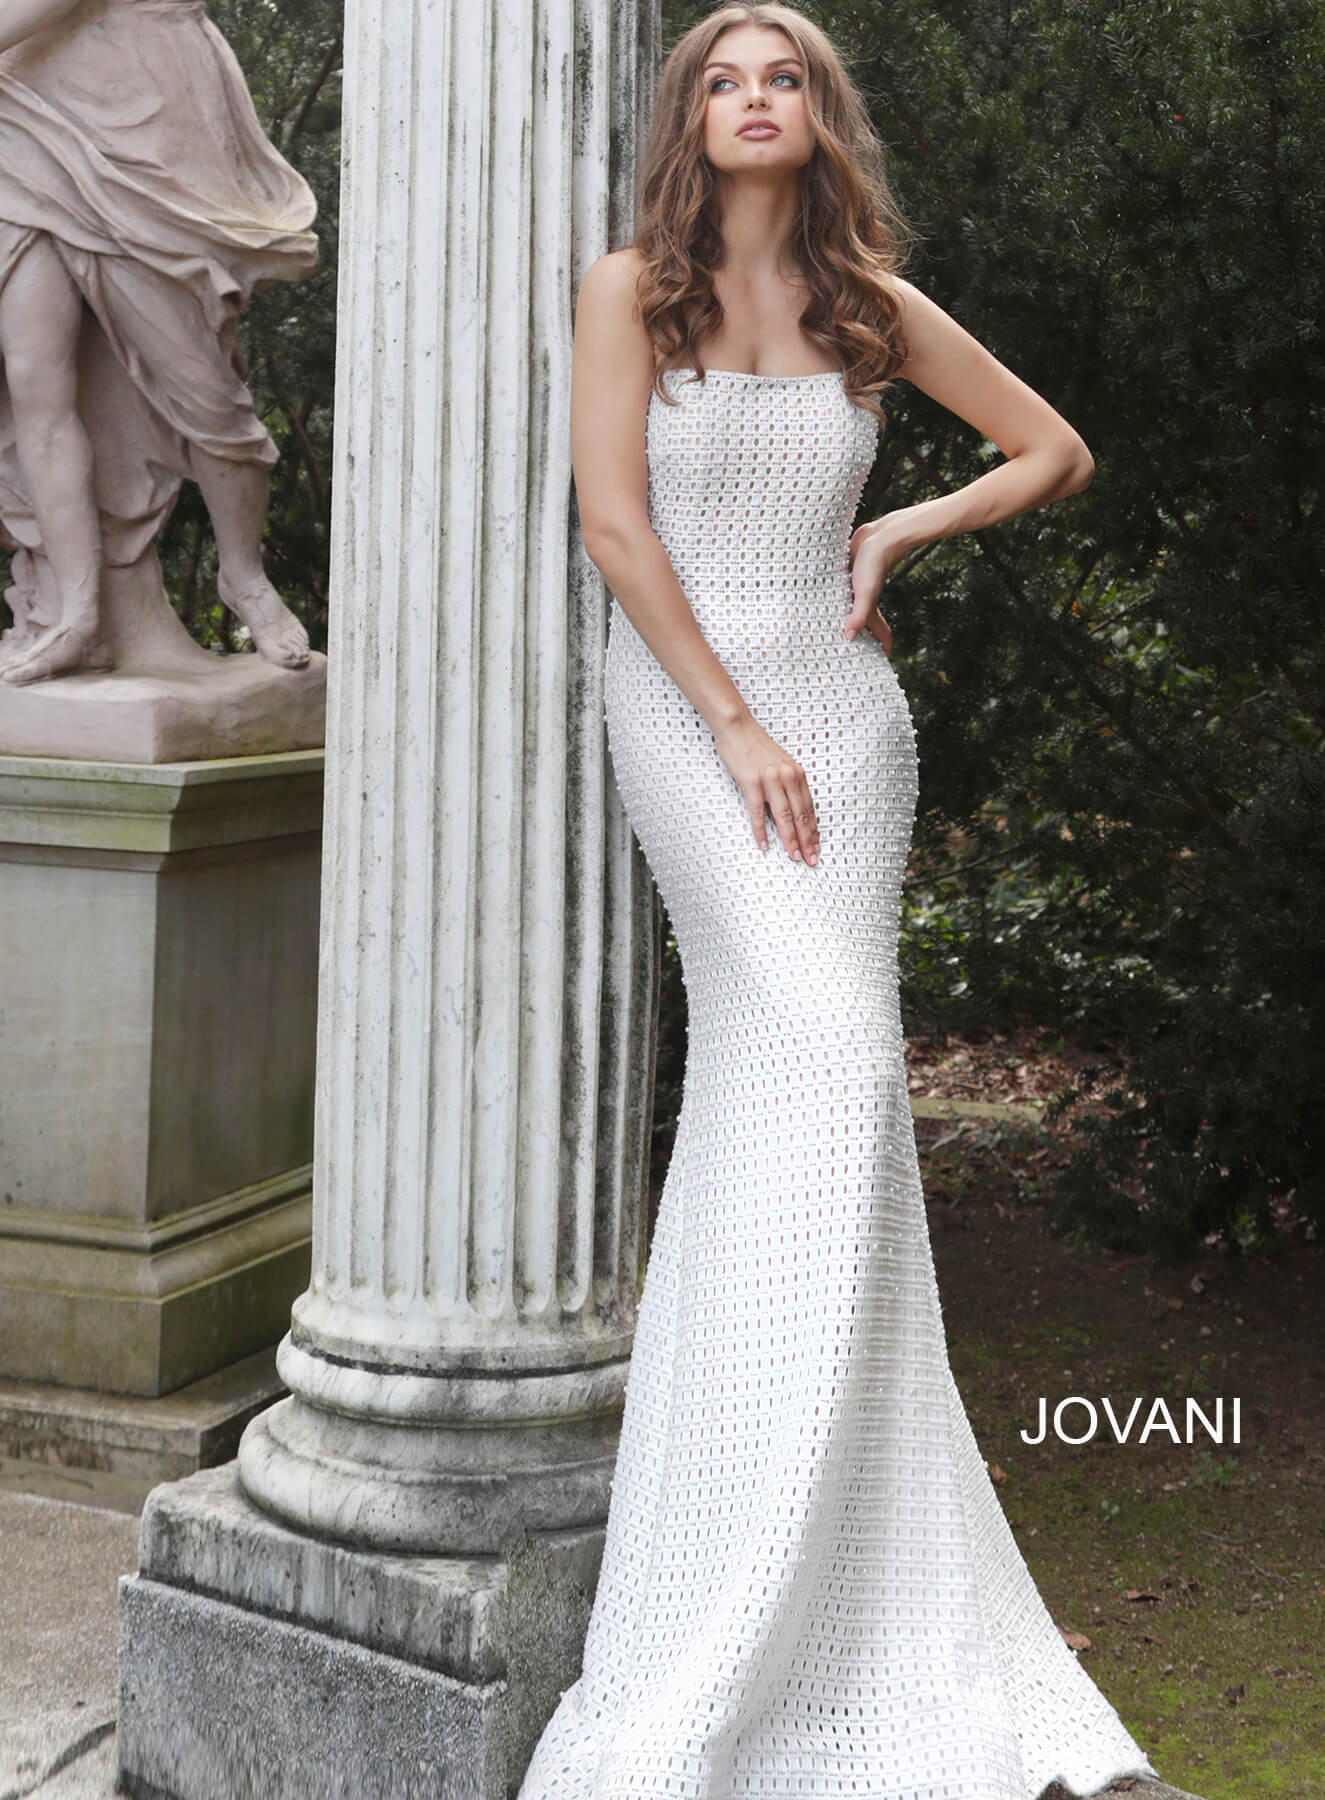 jovani Jovani 63393 Ivory Nude Strapless Wedding Dress